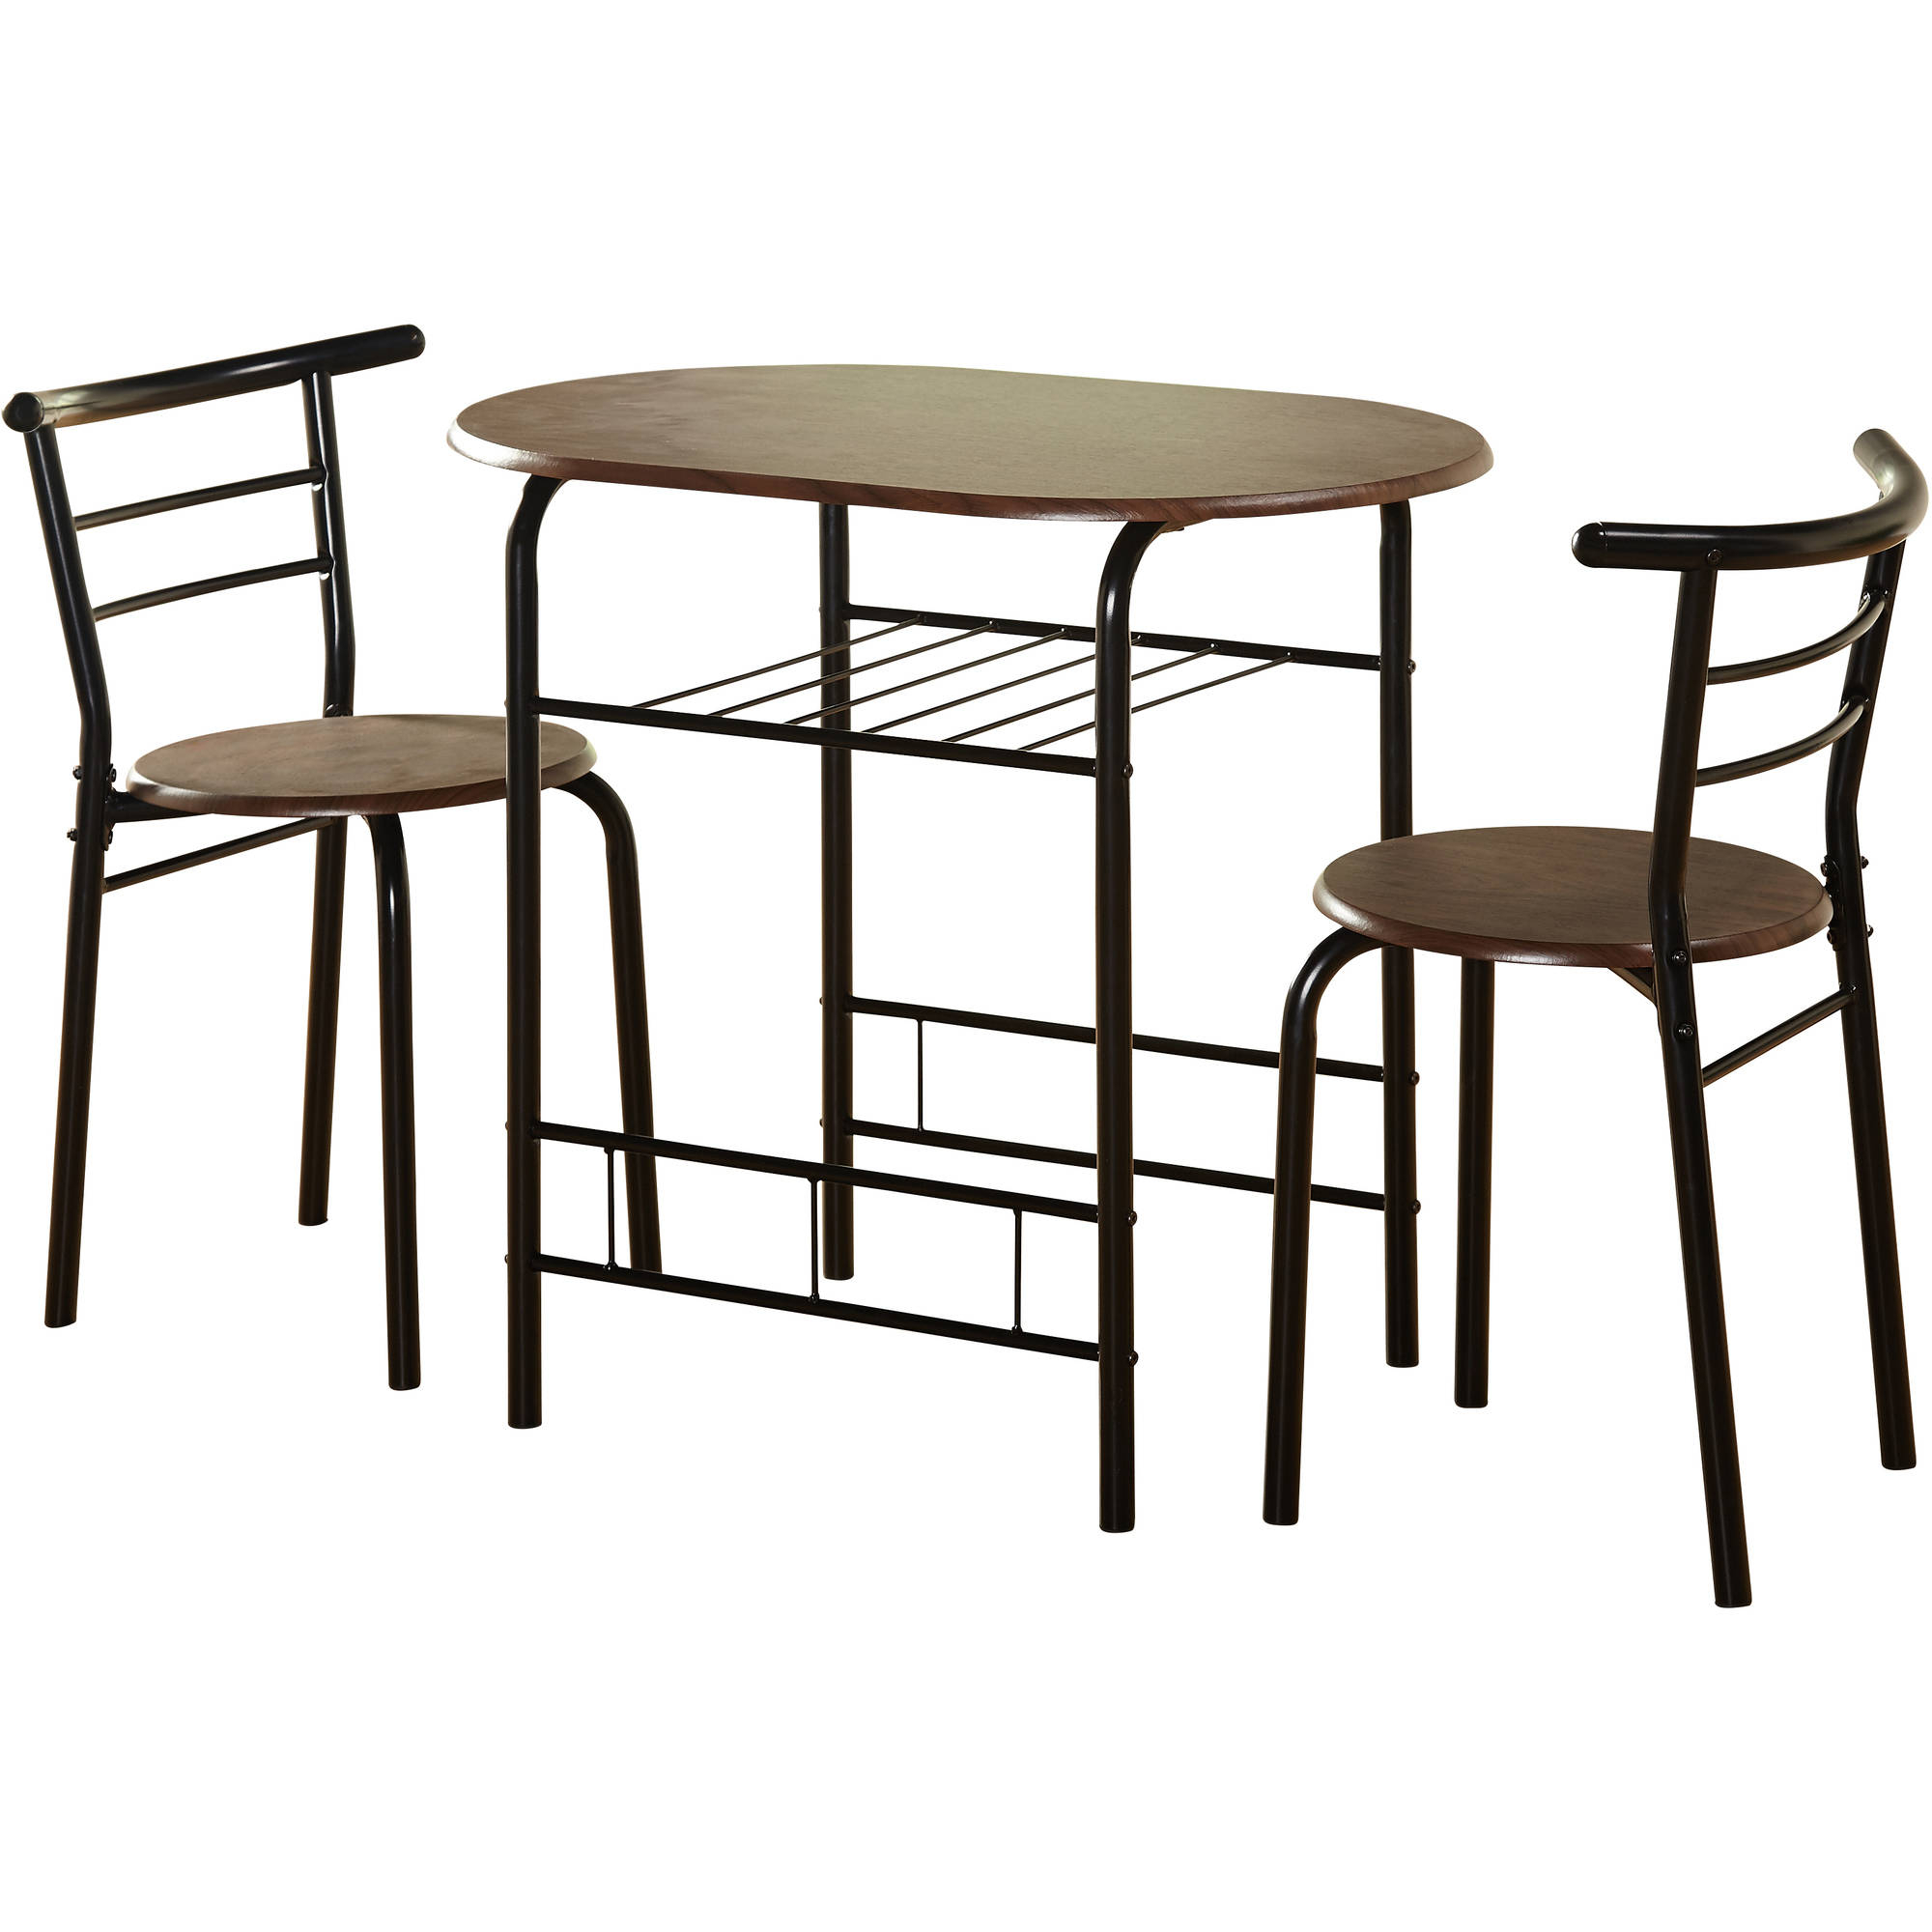 Tms 3 Piece Bistro Dining Set – Walmart With Popular Bate Red Retro 3 Piece Dining Sets (View 17 of 25)